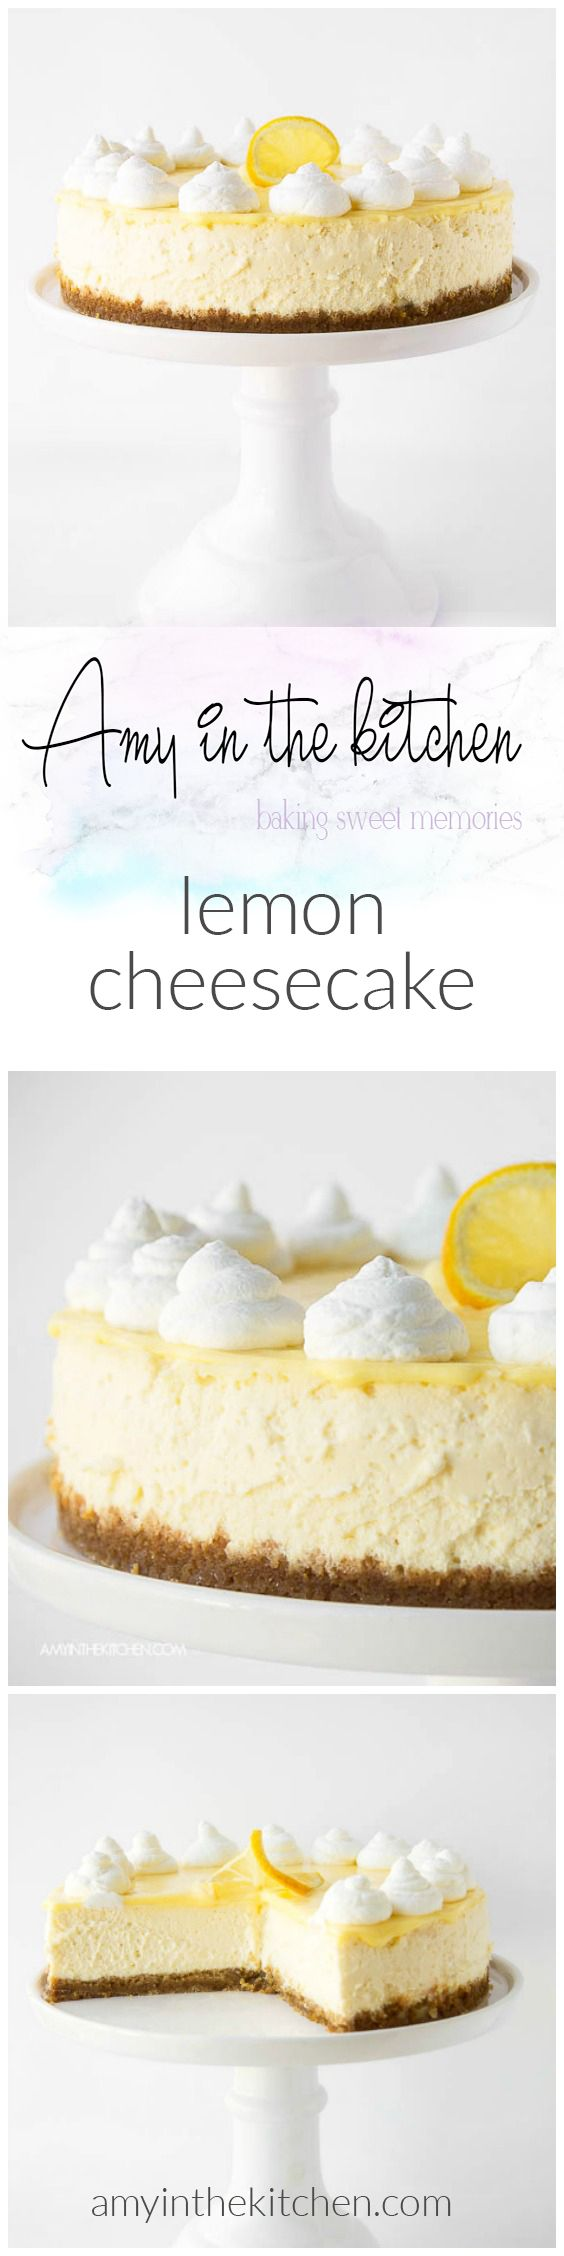 Lemon Cheesecake | So surprisingly light and refreshing. Perfect for getting your lemon fix! | AmyintheKitchen.com